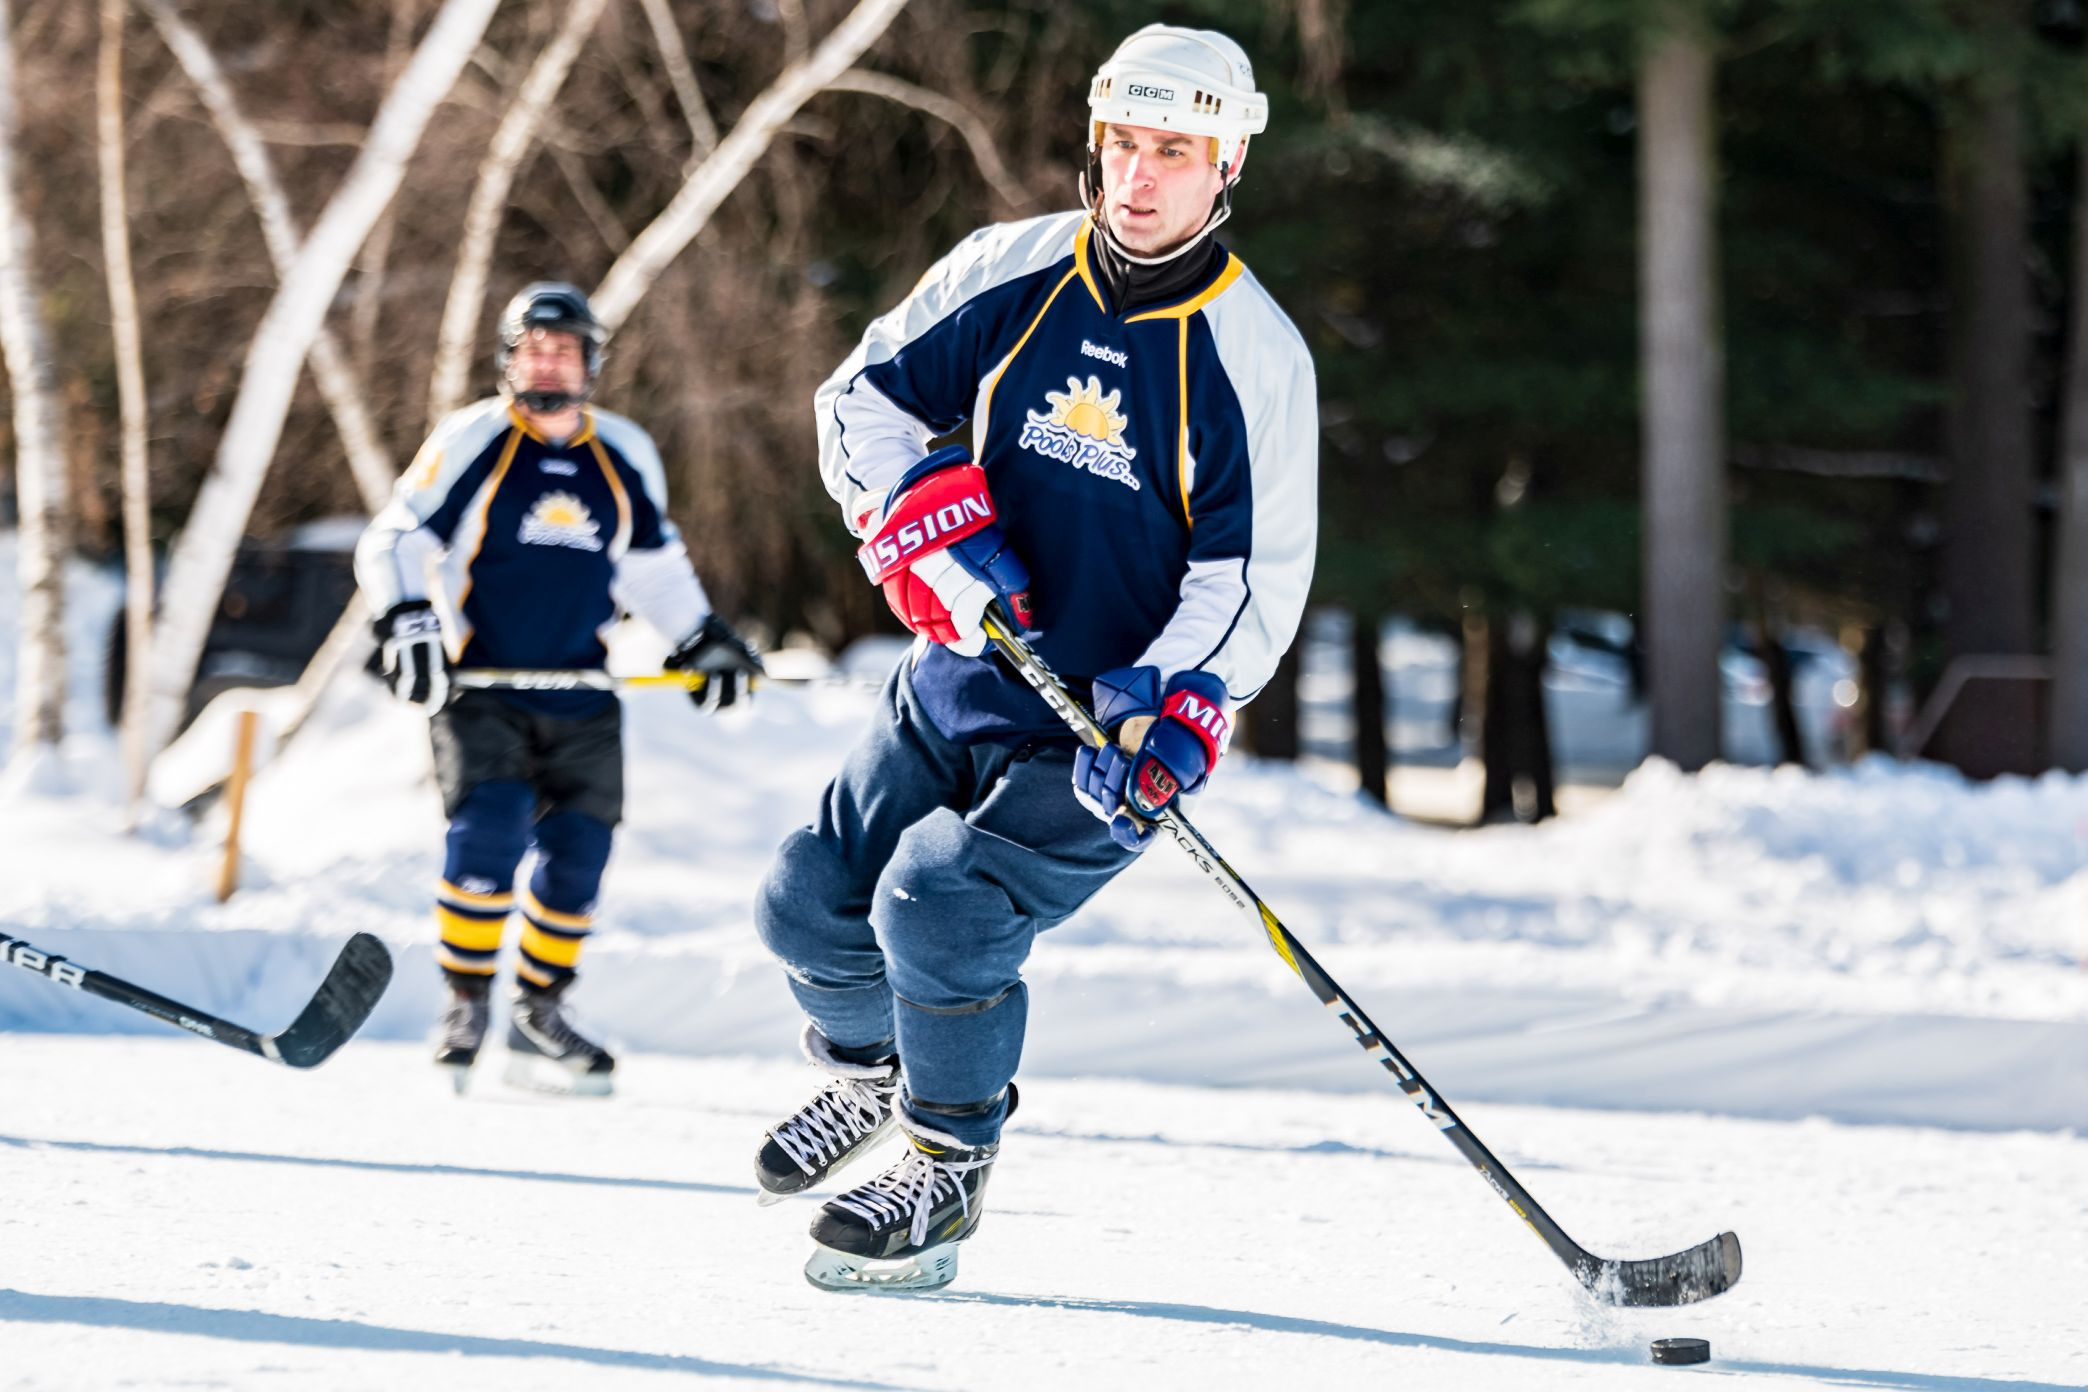 ADK Hockey-507913.jpg